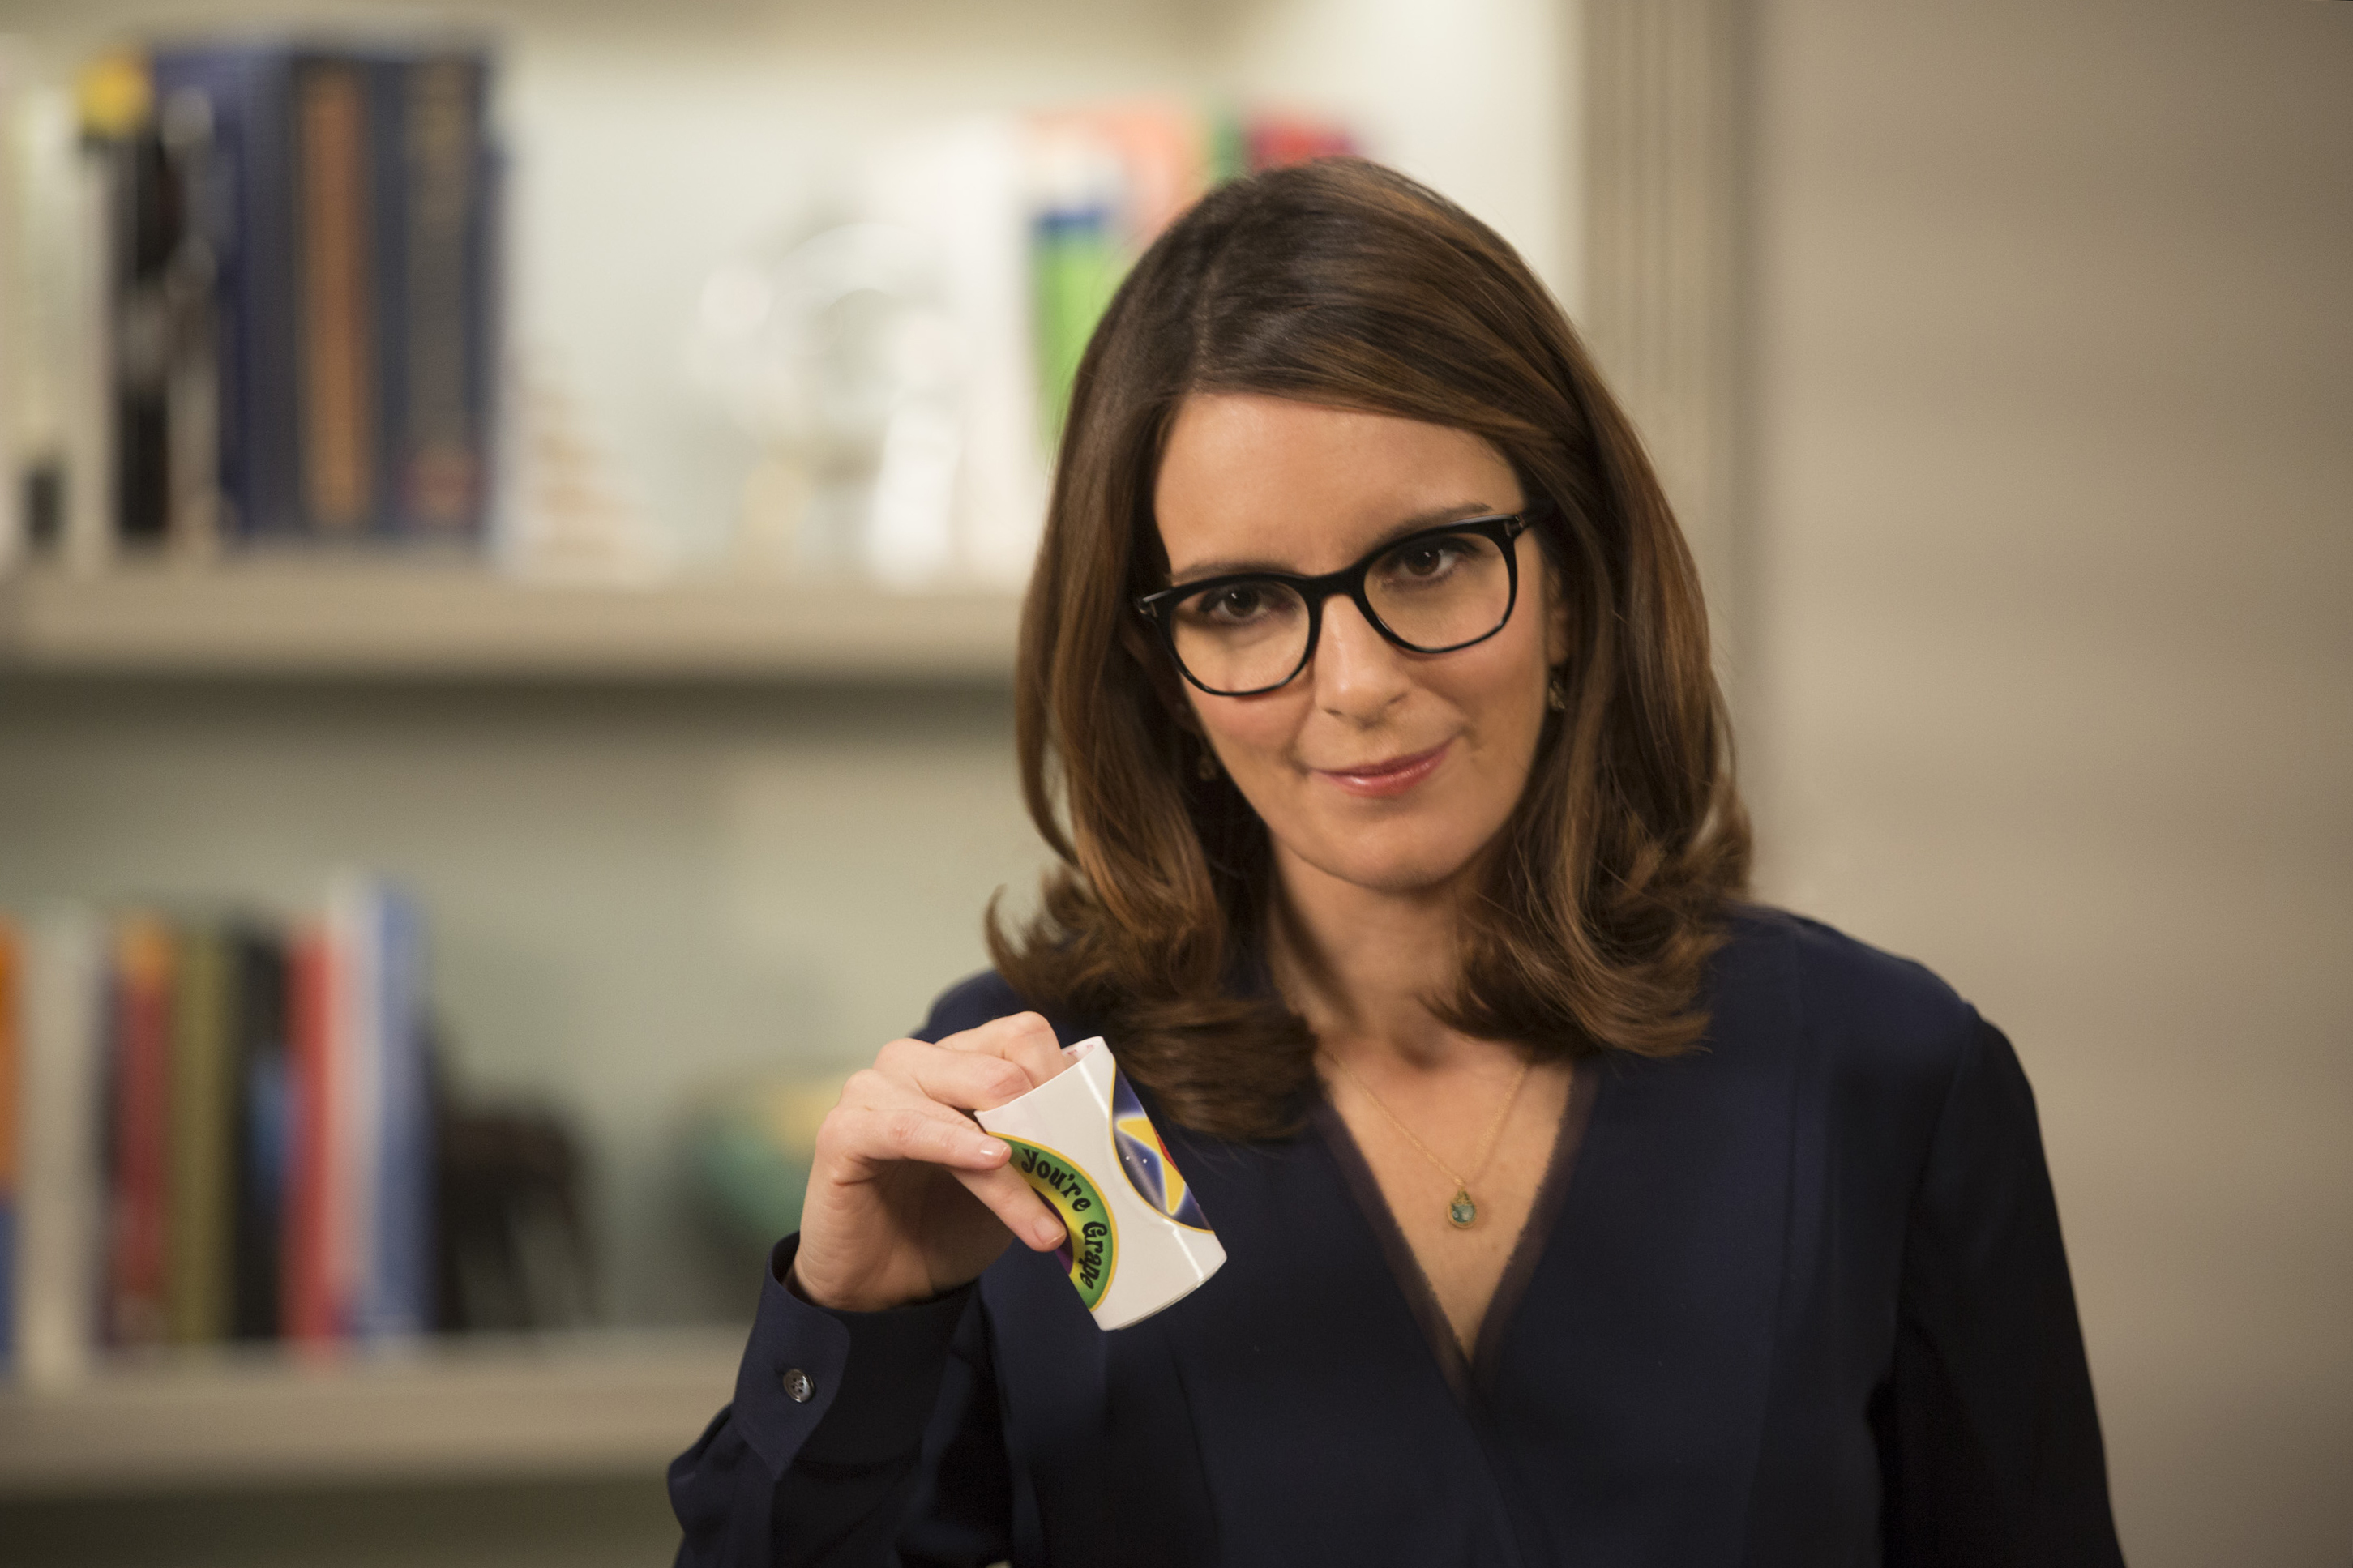 Tina Fey education